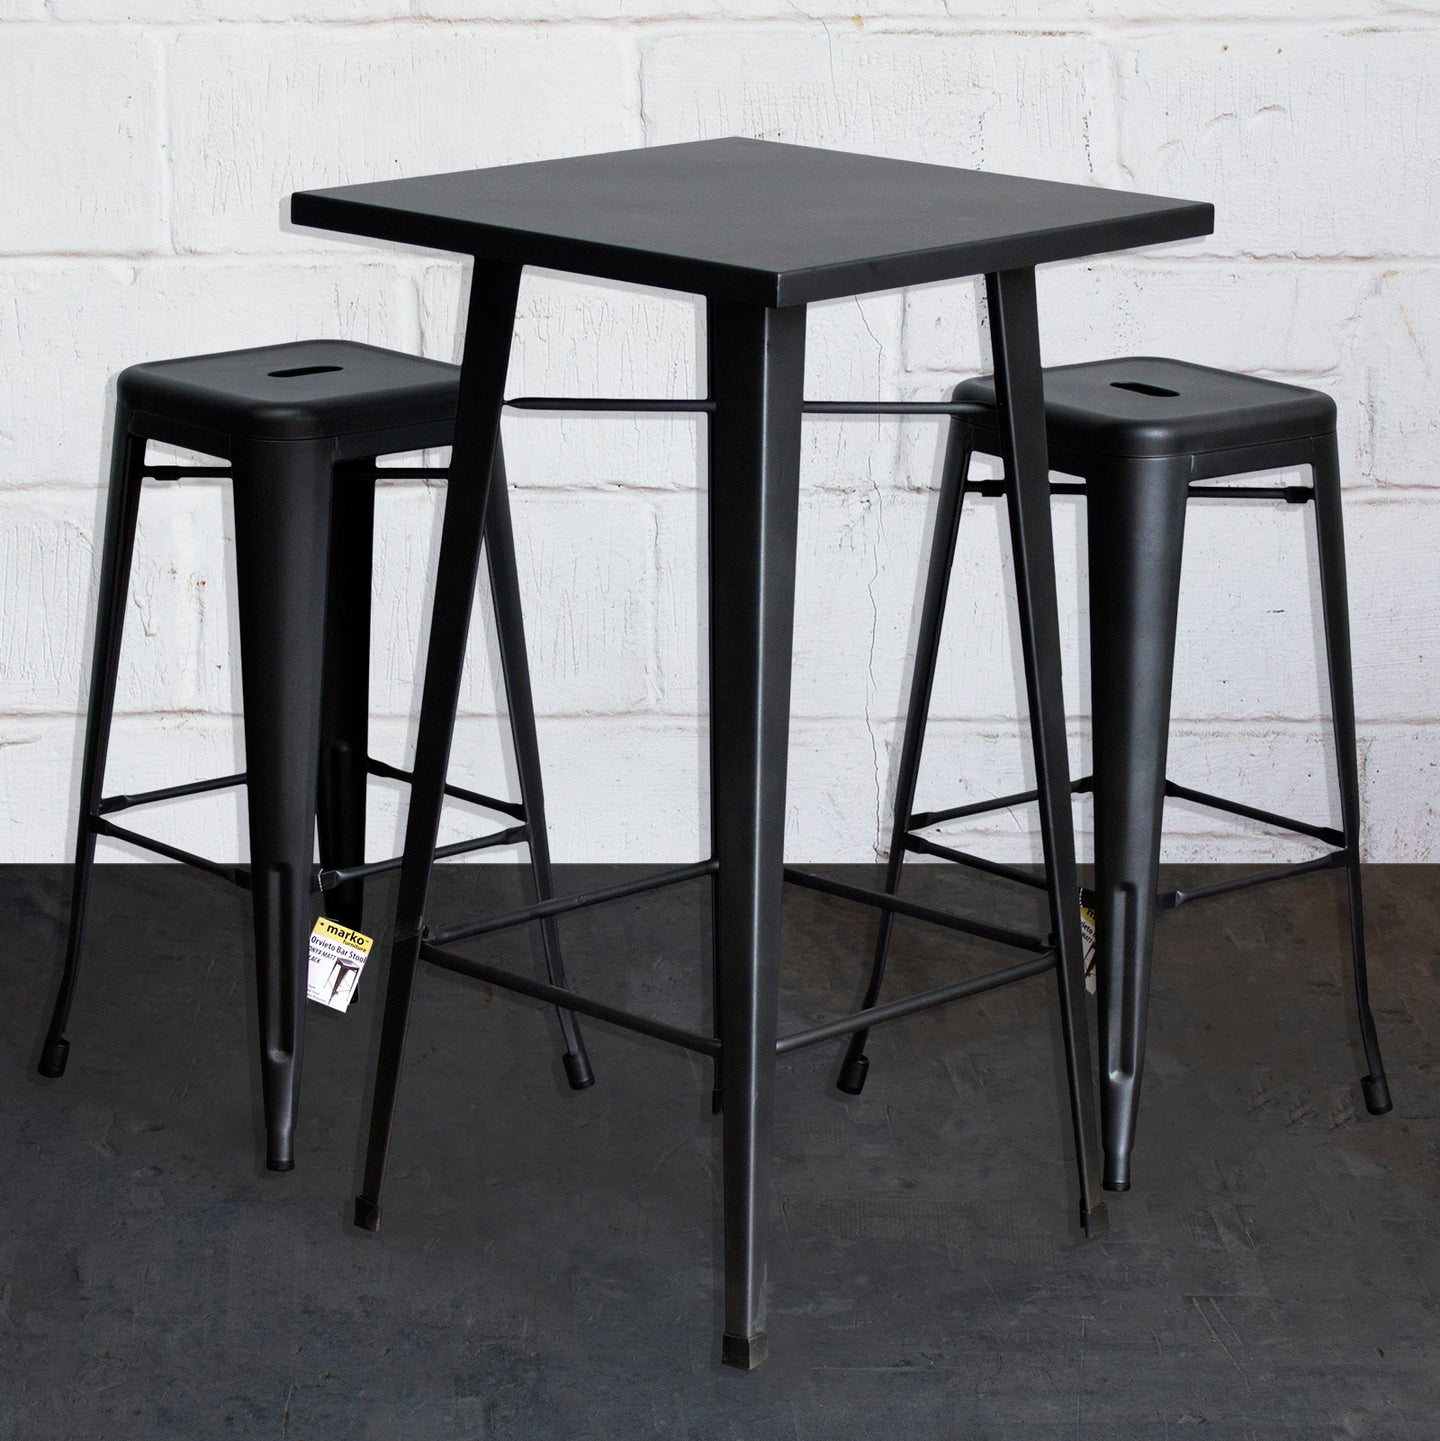 3PC Laus Table & Orvieto Bar Stool Set - Onyx Matt Black